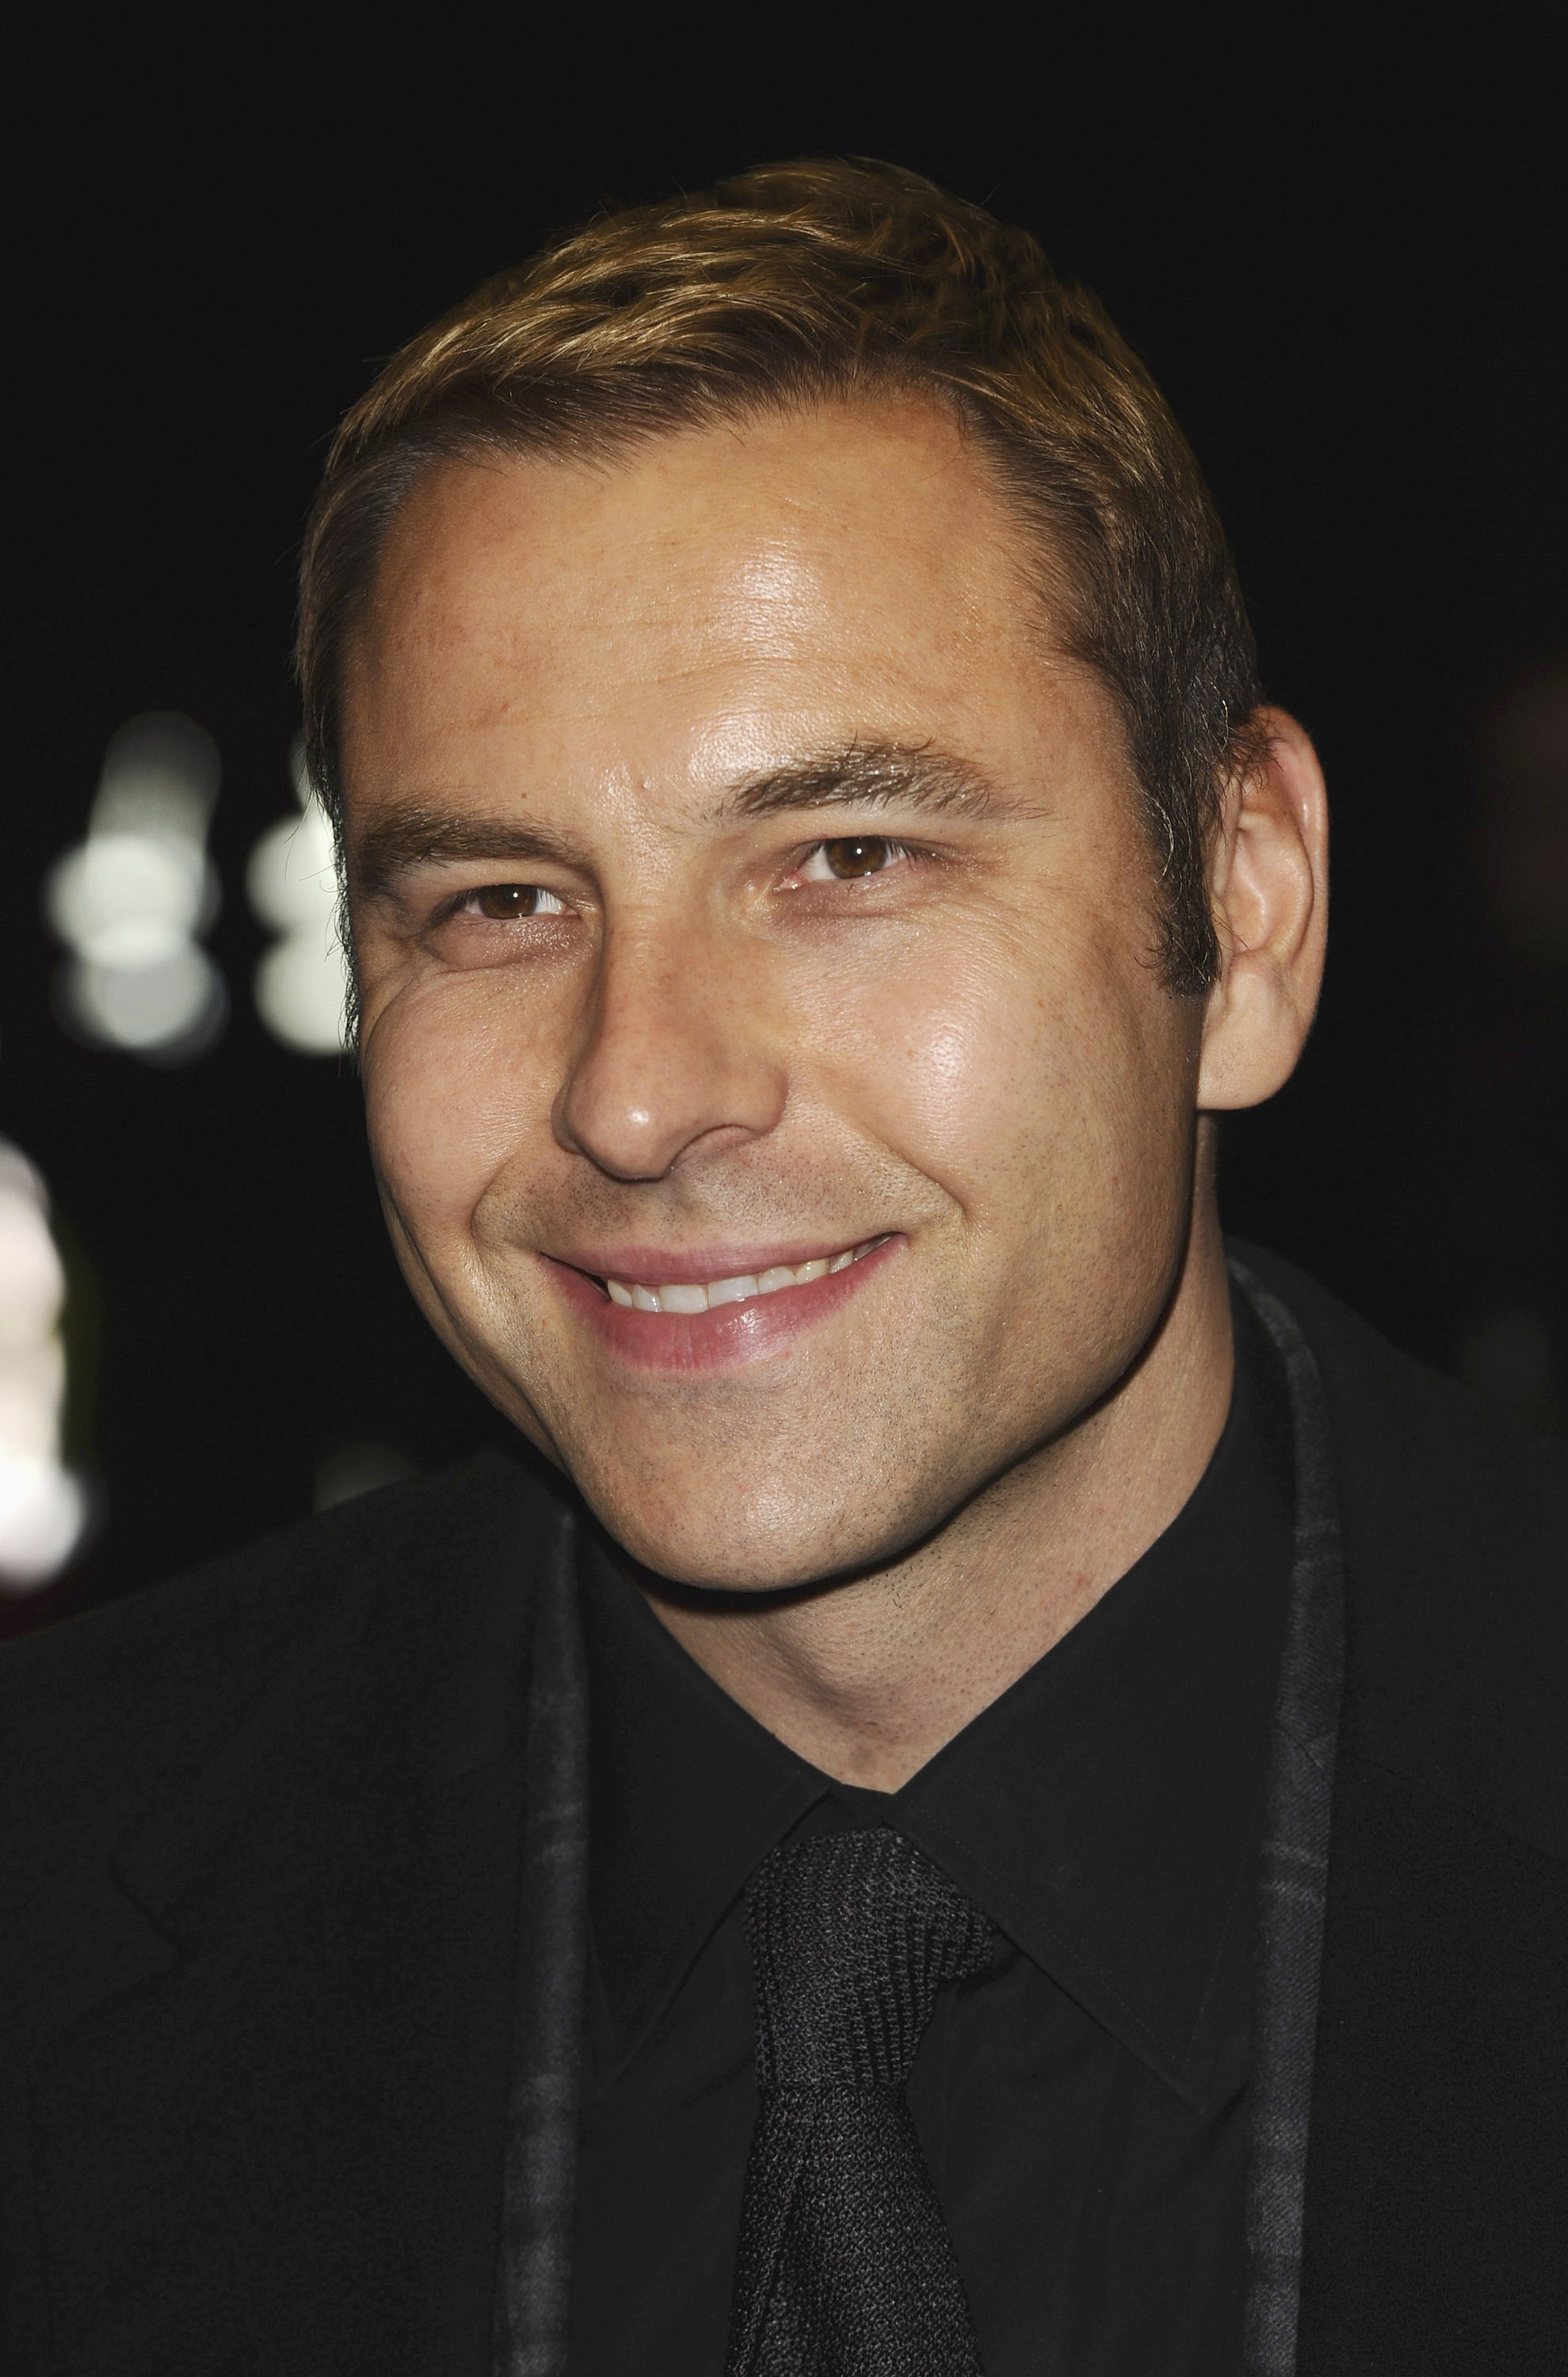 david walliams - photo #15